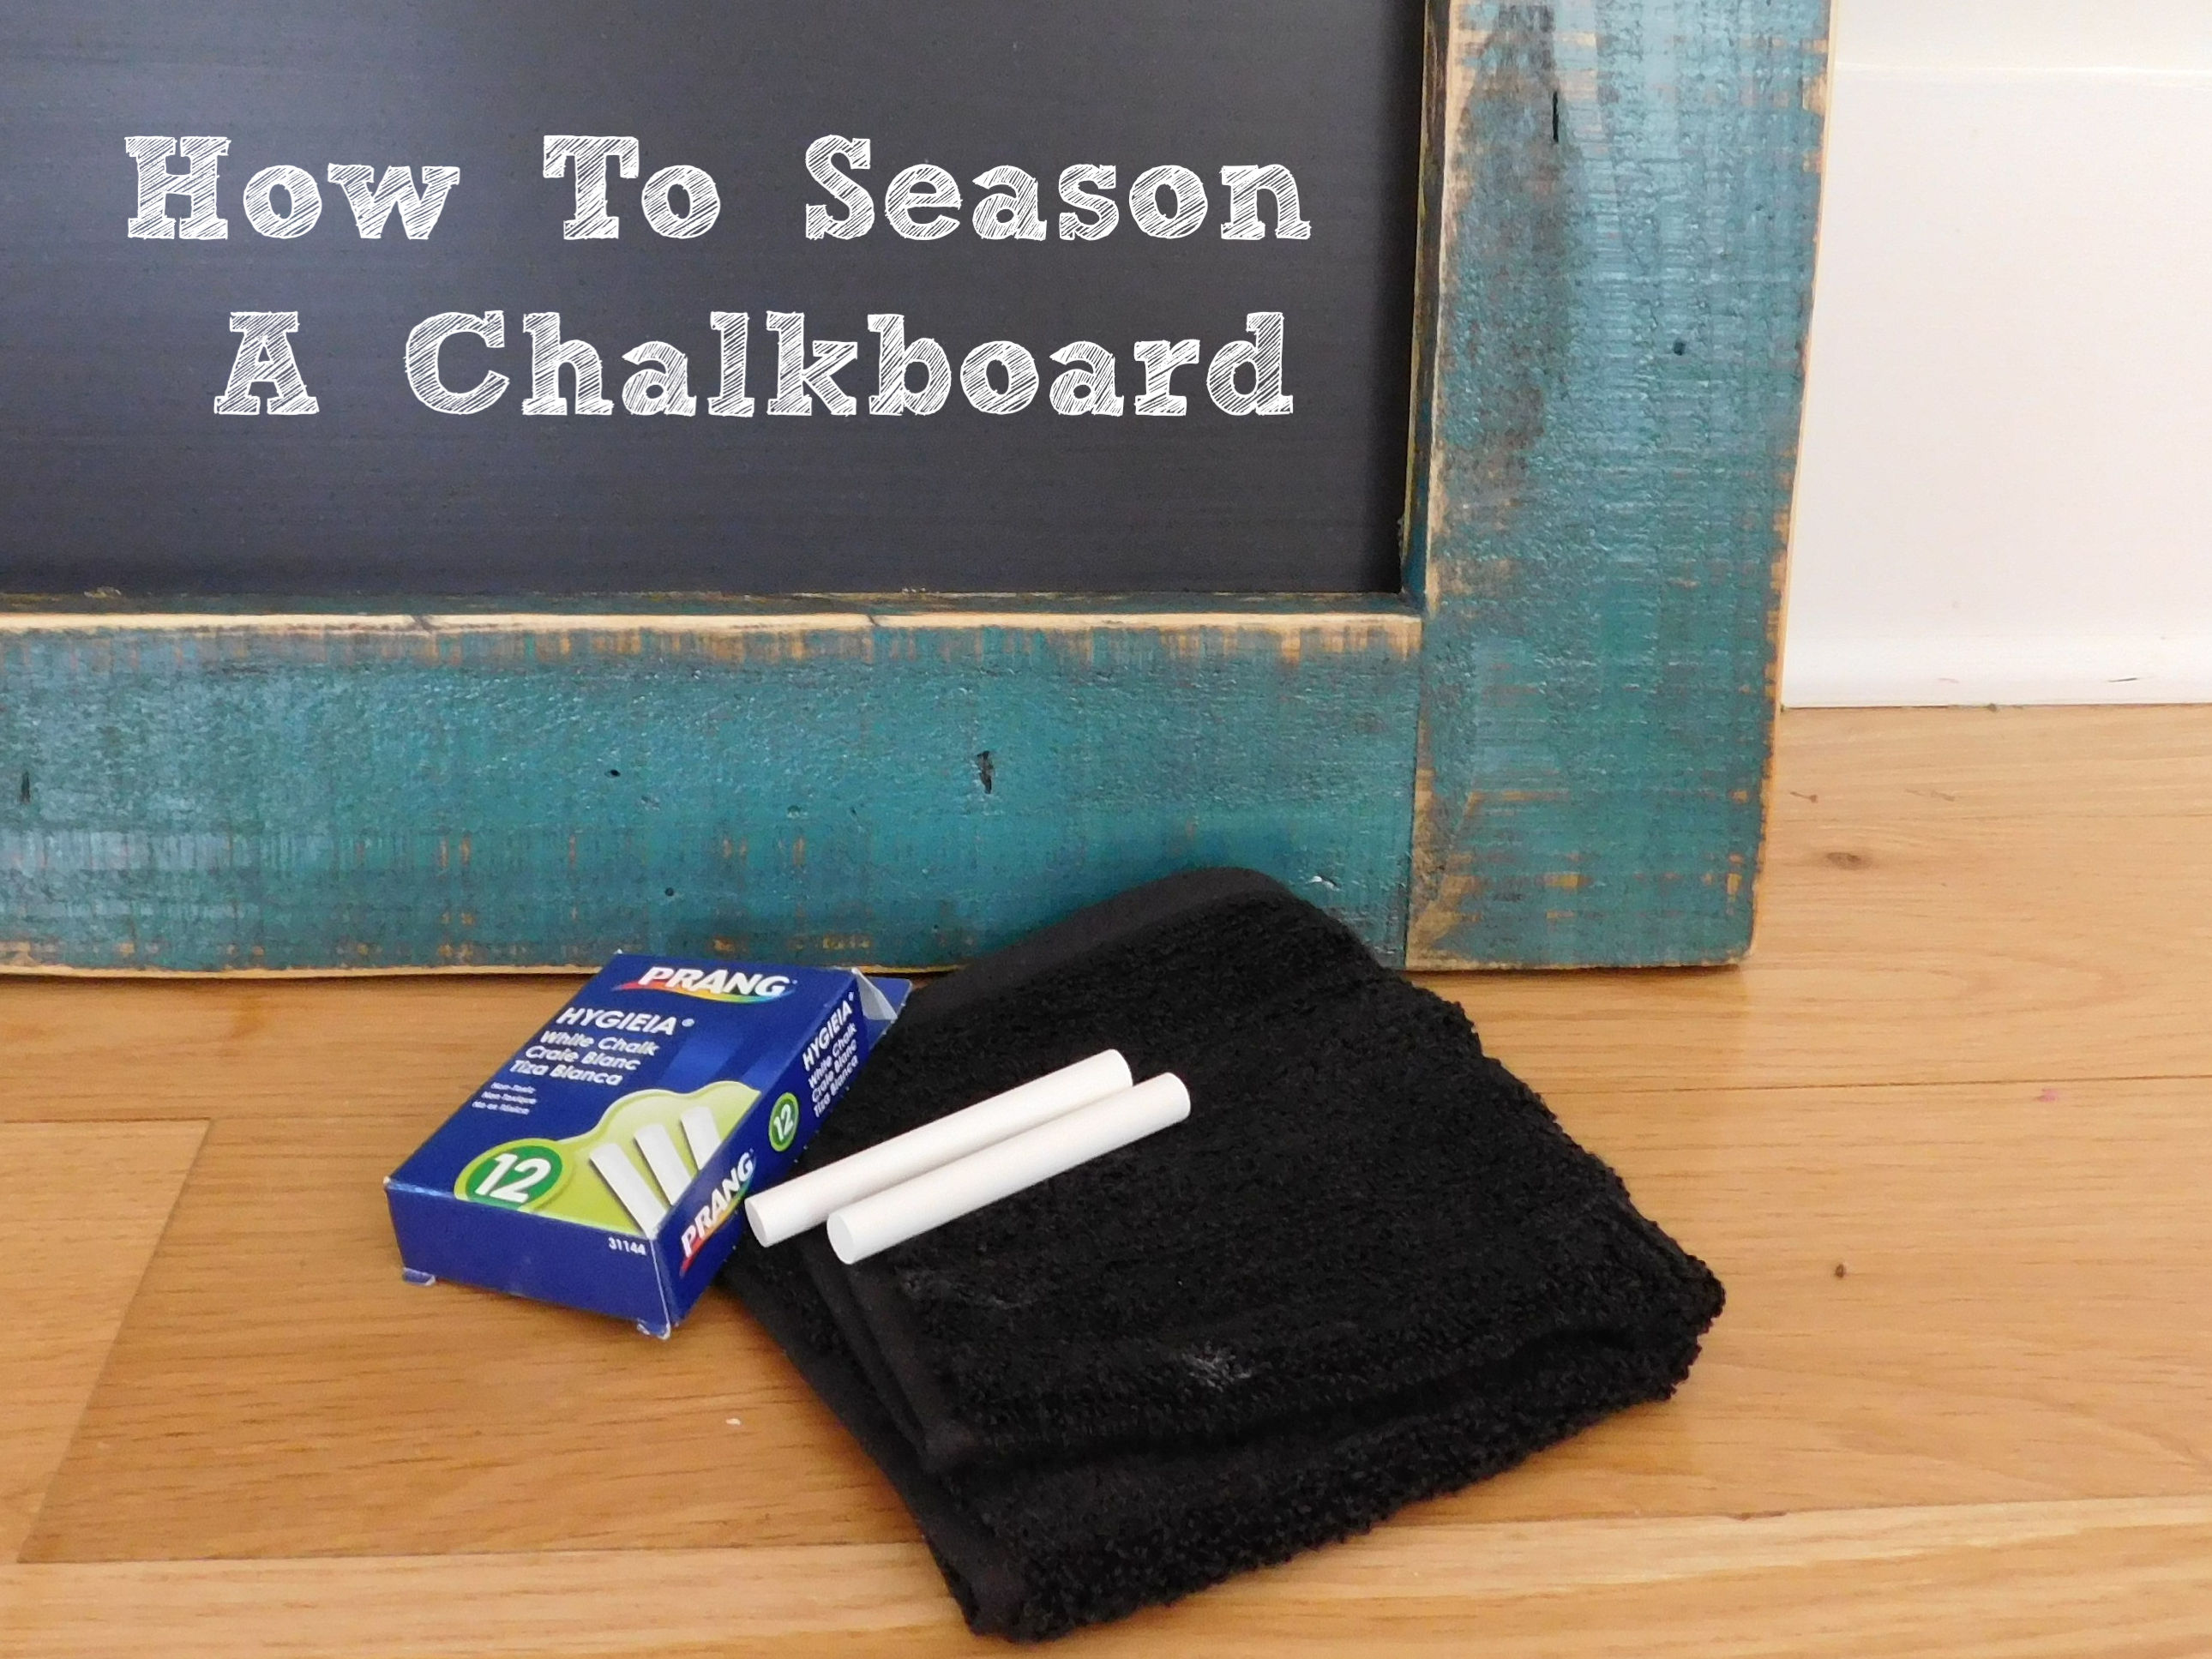 How to Season A Chalkboard